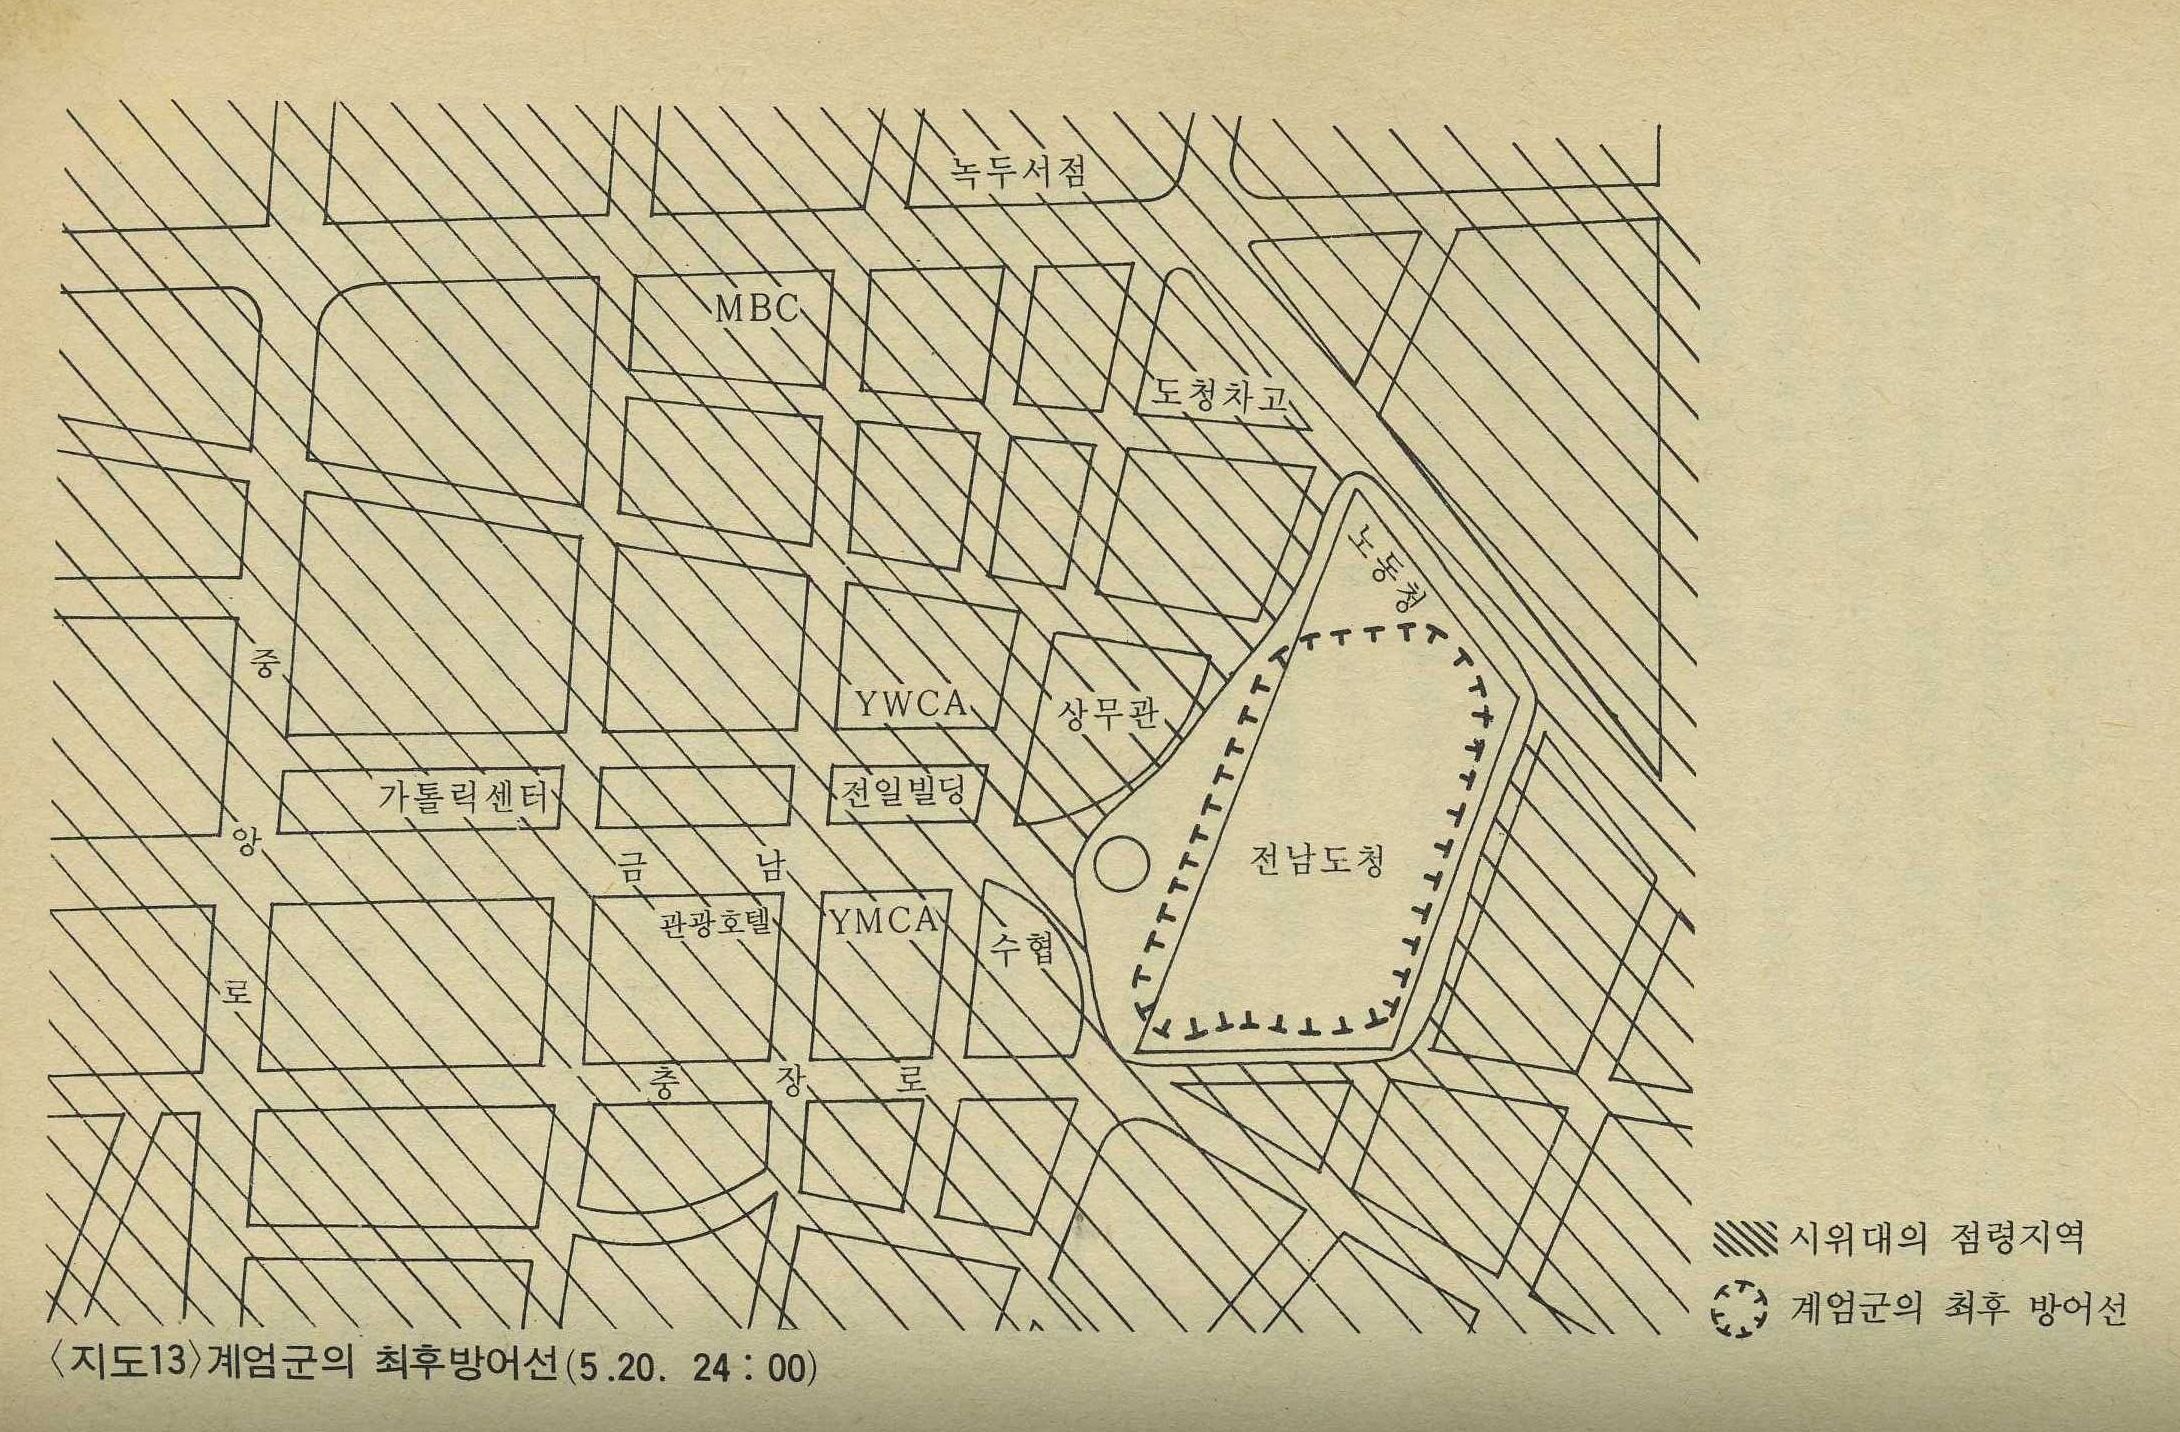 http://study21.org/518/photo/daily/map5-20.jpg